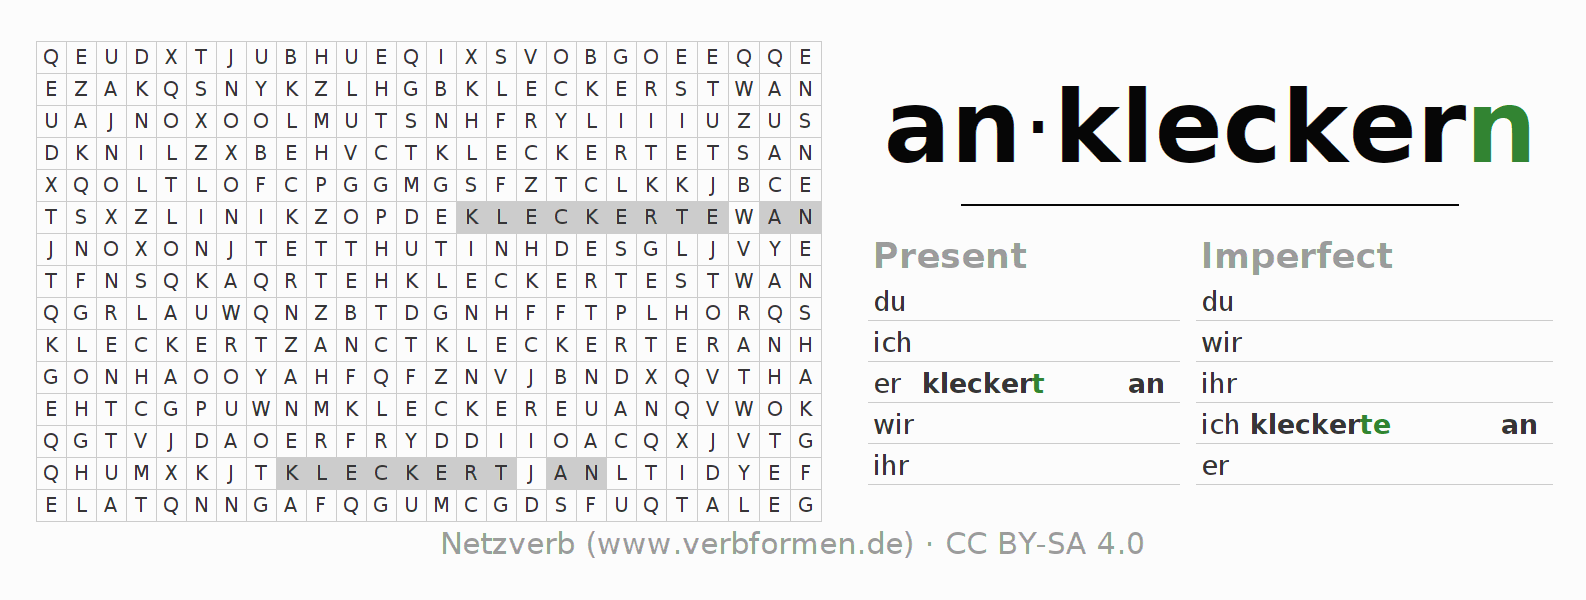 Word search puzzle for the conjugation of the verb ankleckern